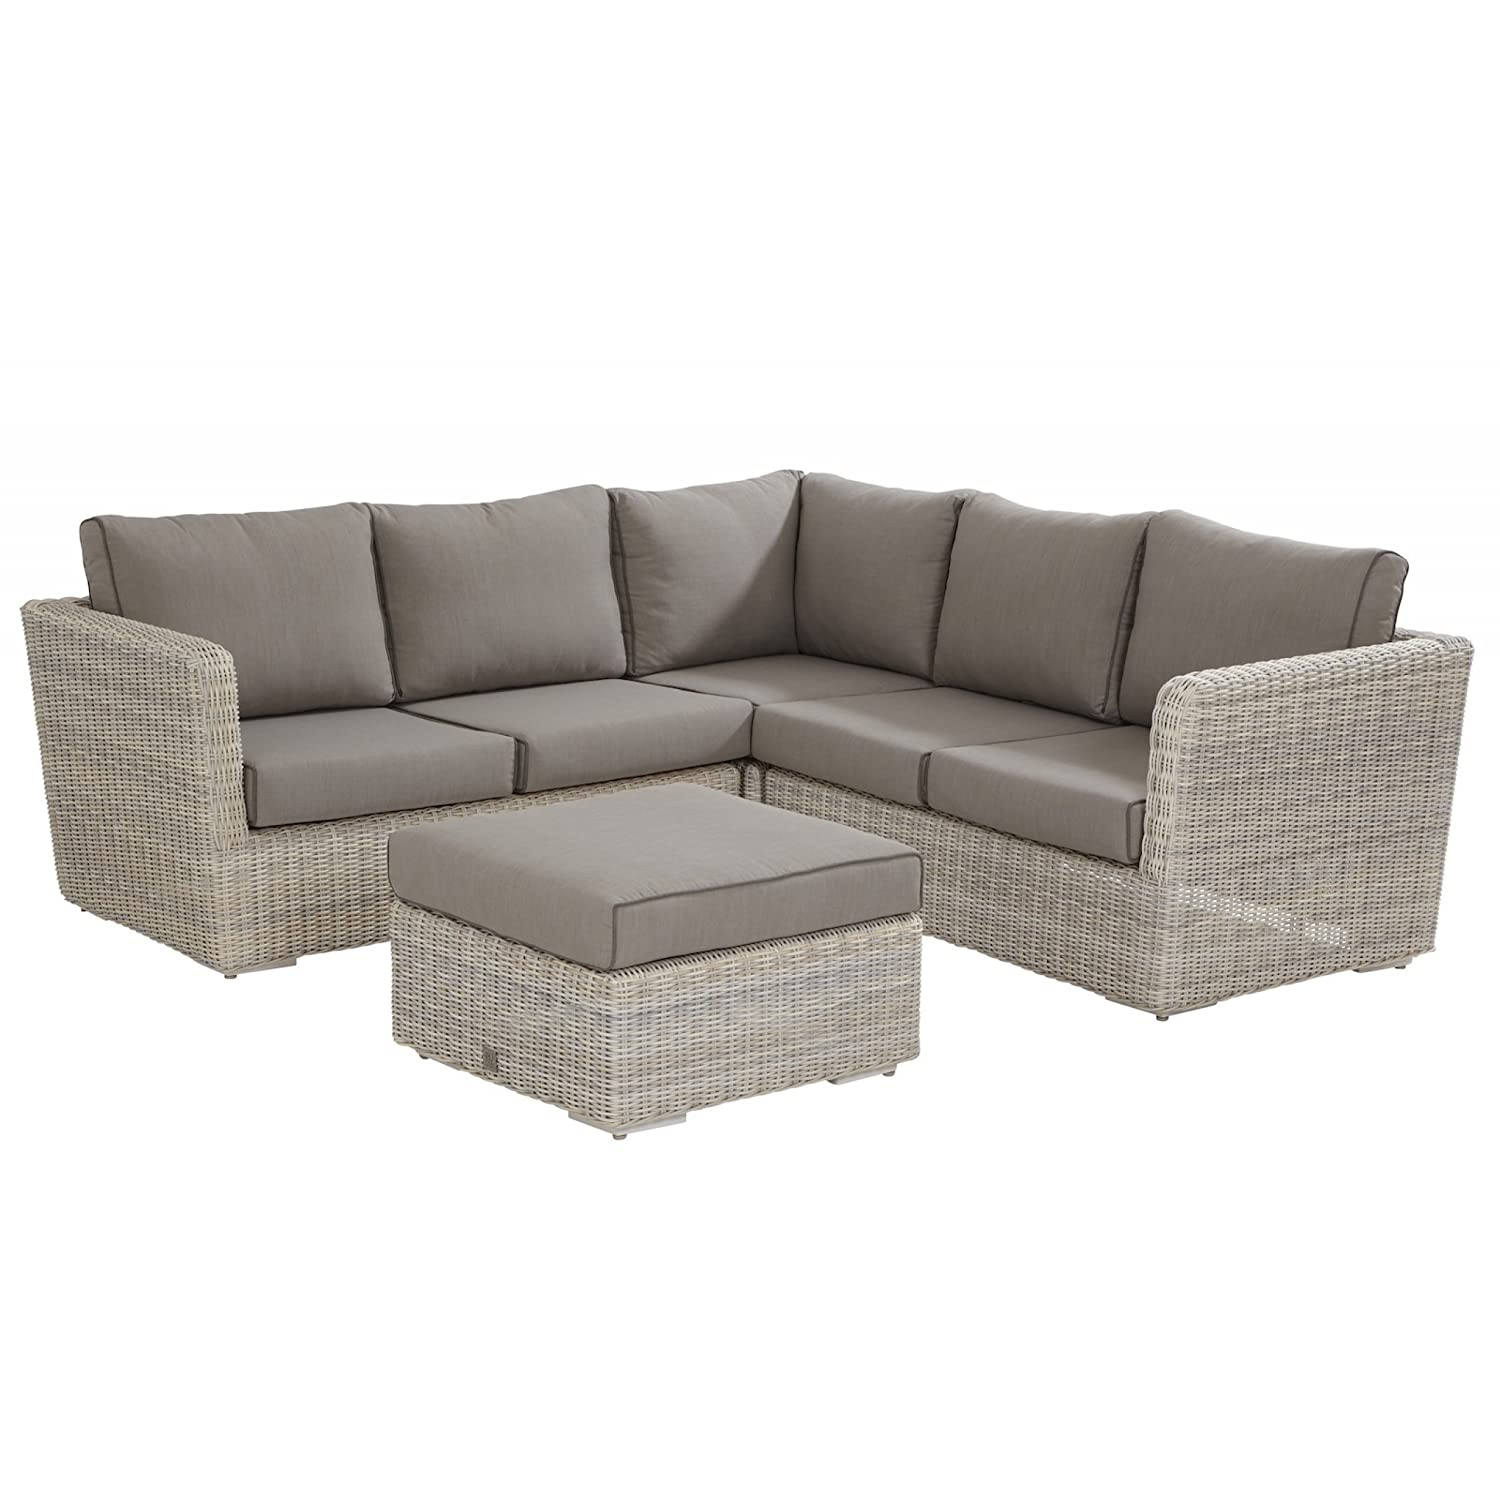 4Seasons Outdoor Elite 4-teilige Eck-Loungegruppe Polyrattan Provance